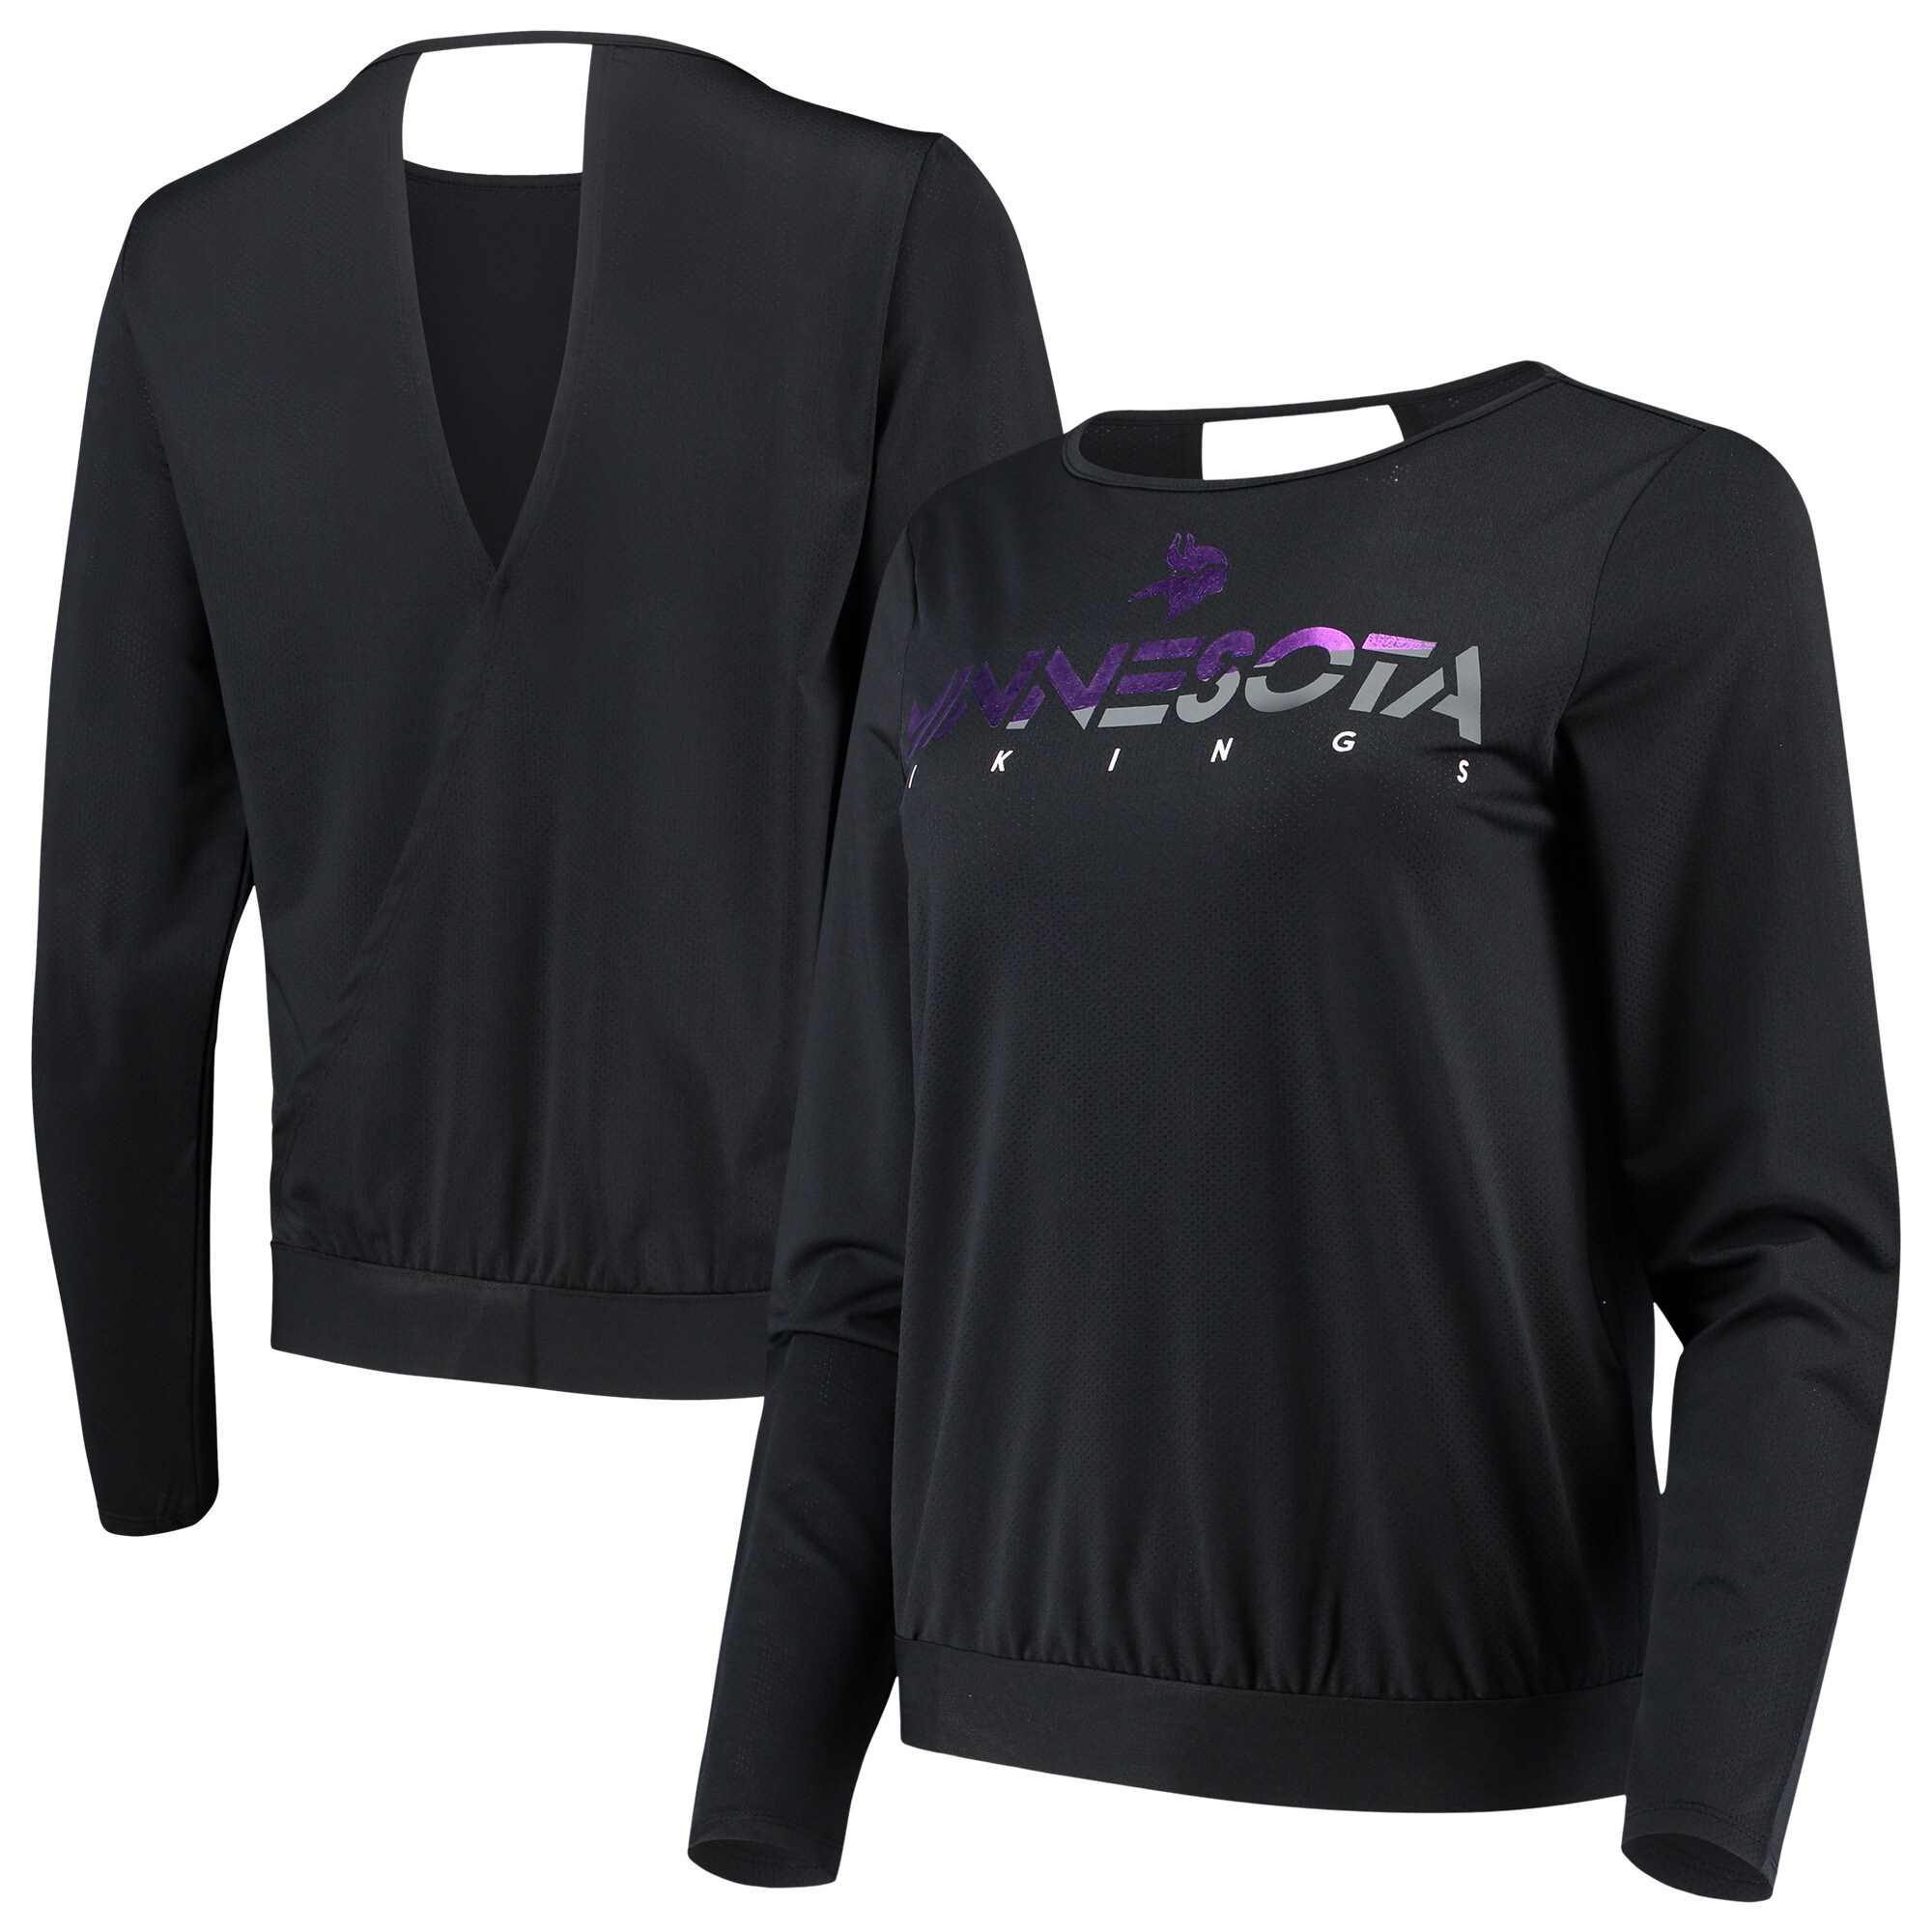 Minnesota Vikings Touch by Alyssa Milano Women's Breeze Back Long Sleeve T-Shirt - Black